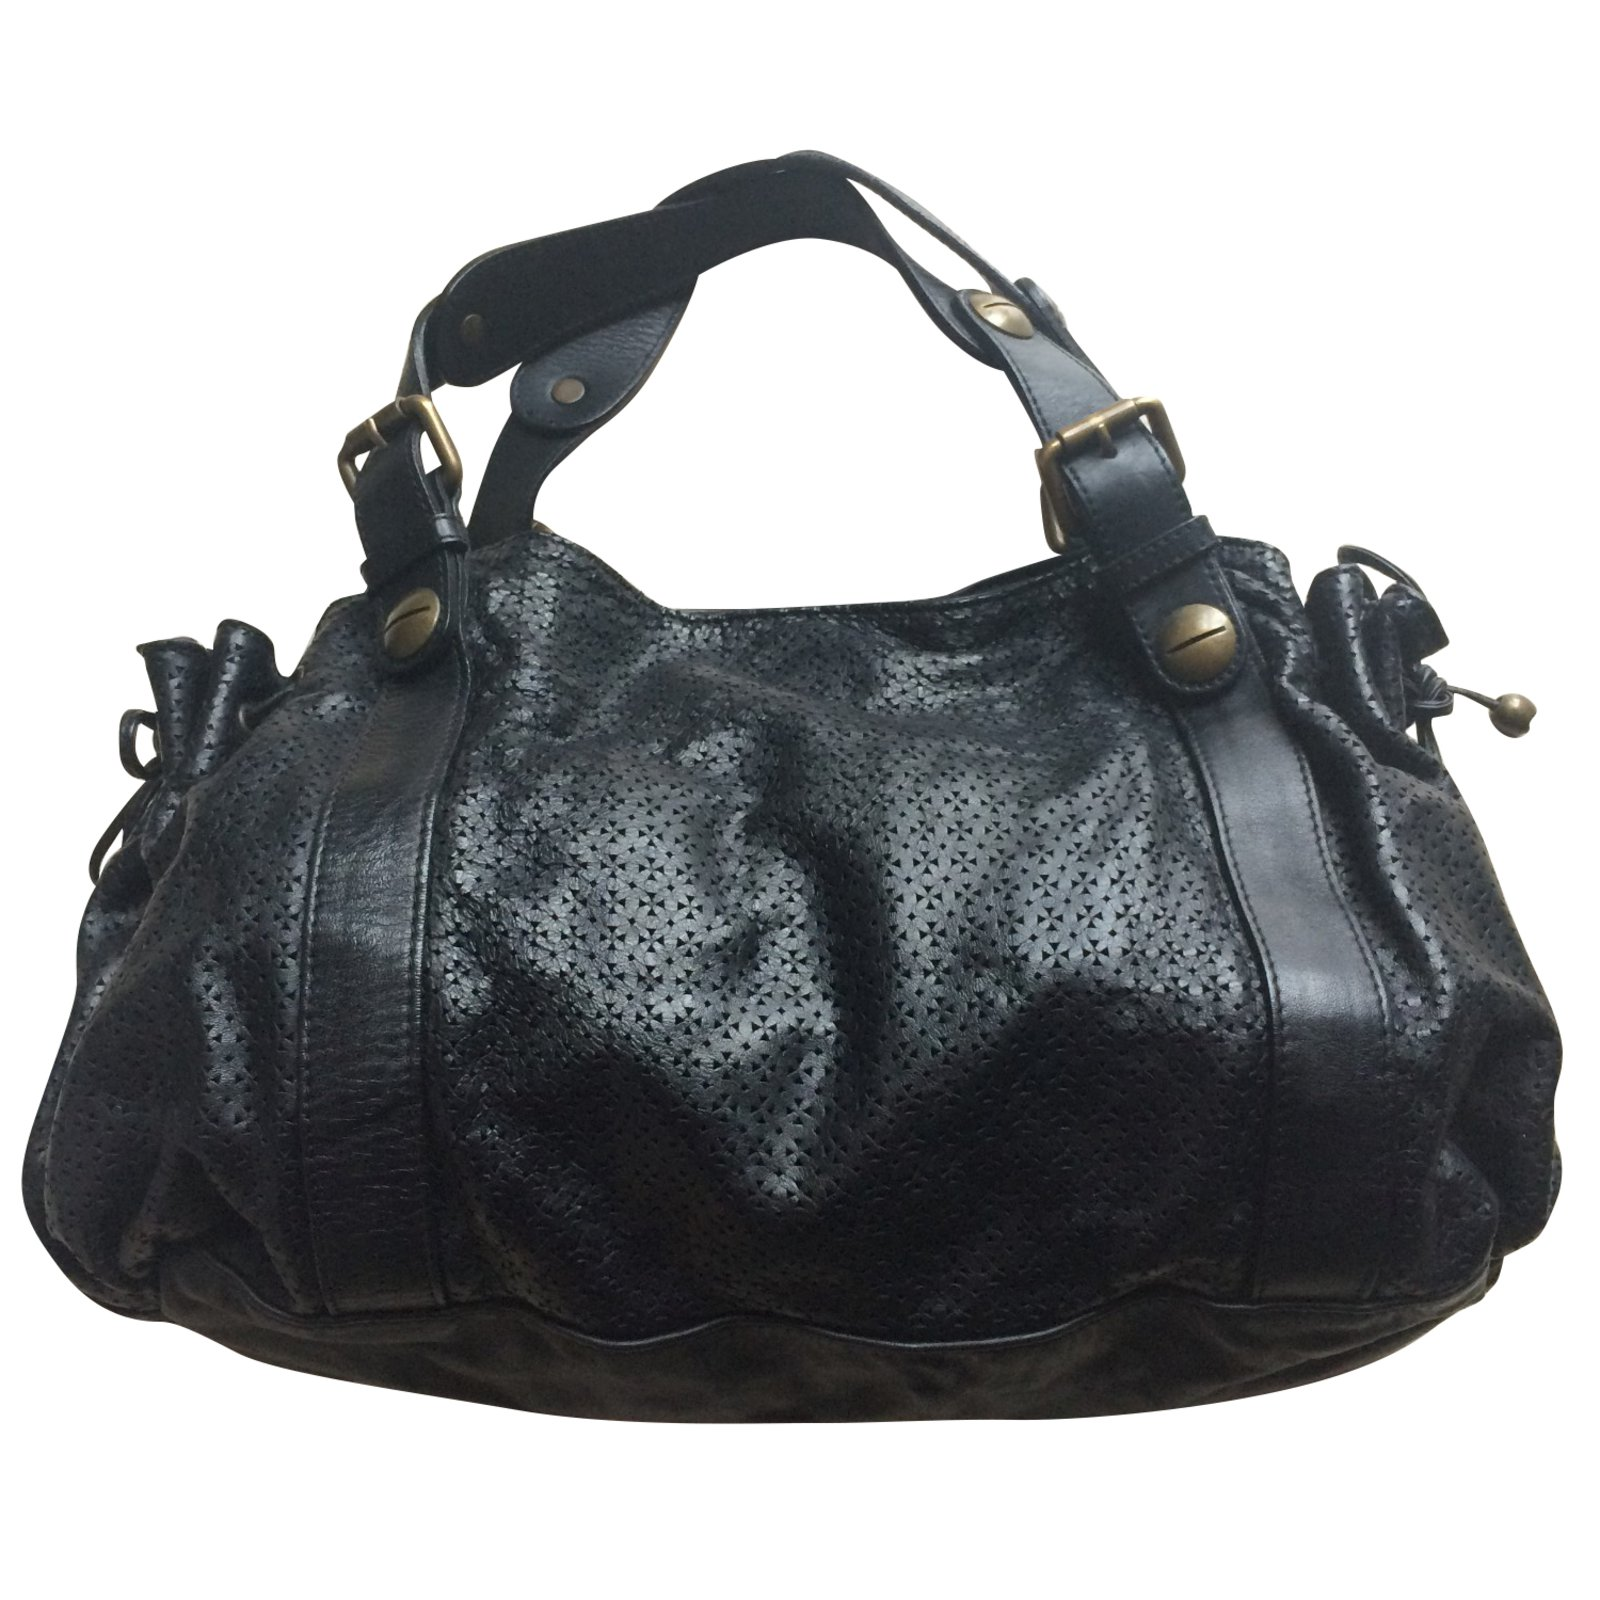 Gerard Darel Handbags Leather Black Ref 64452